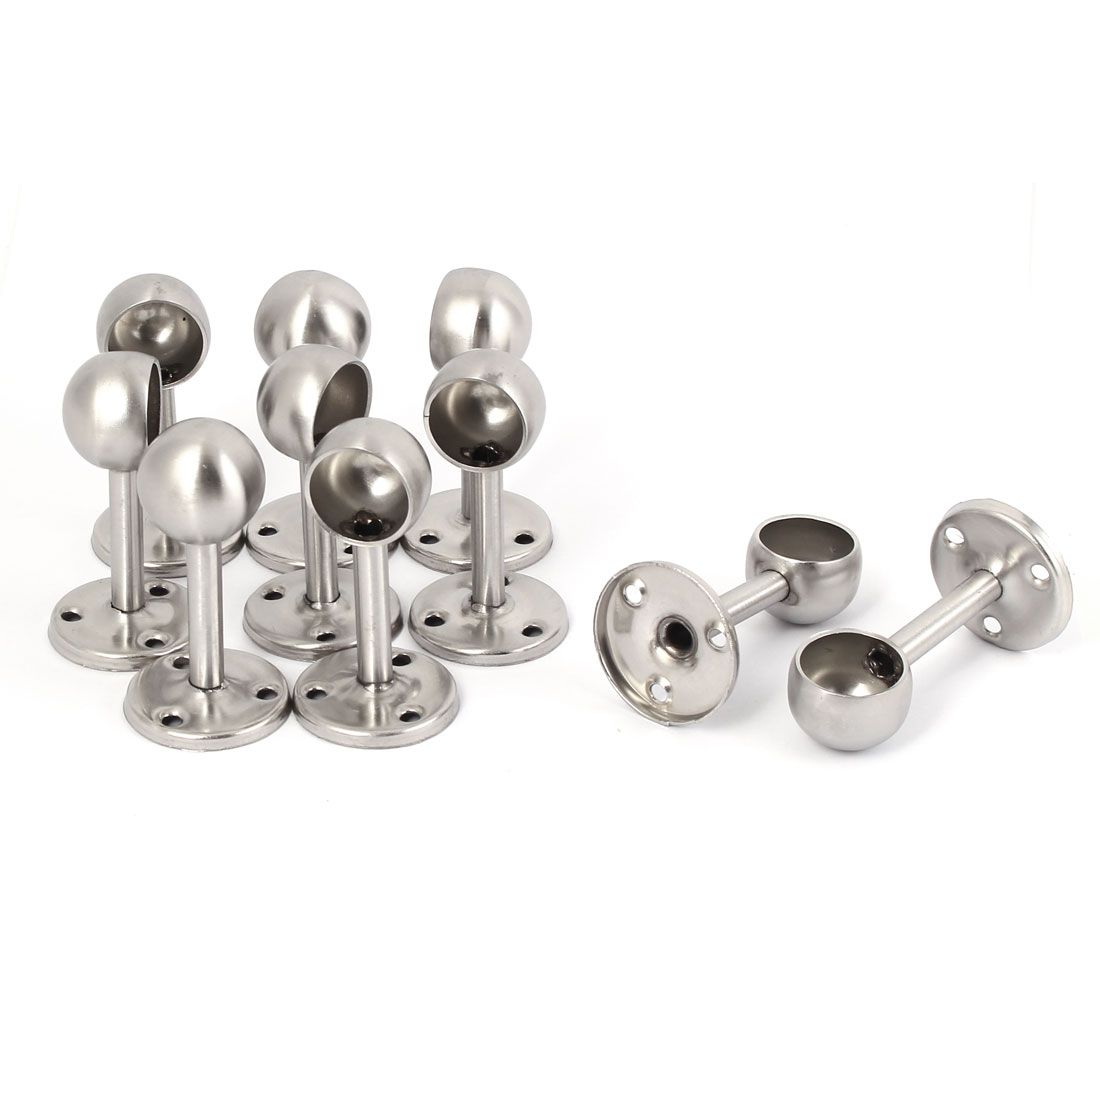 22mm Dia Stainless Steel Wardrobe Curtain Clothes Rail Lever Support Bracket 10pcs